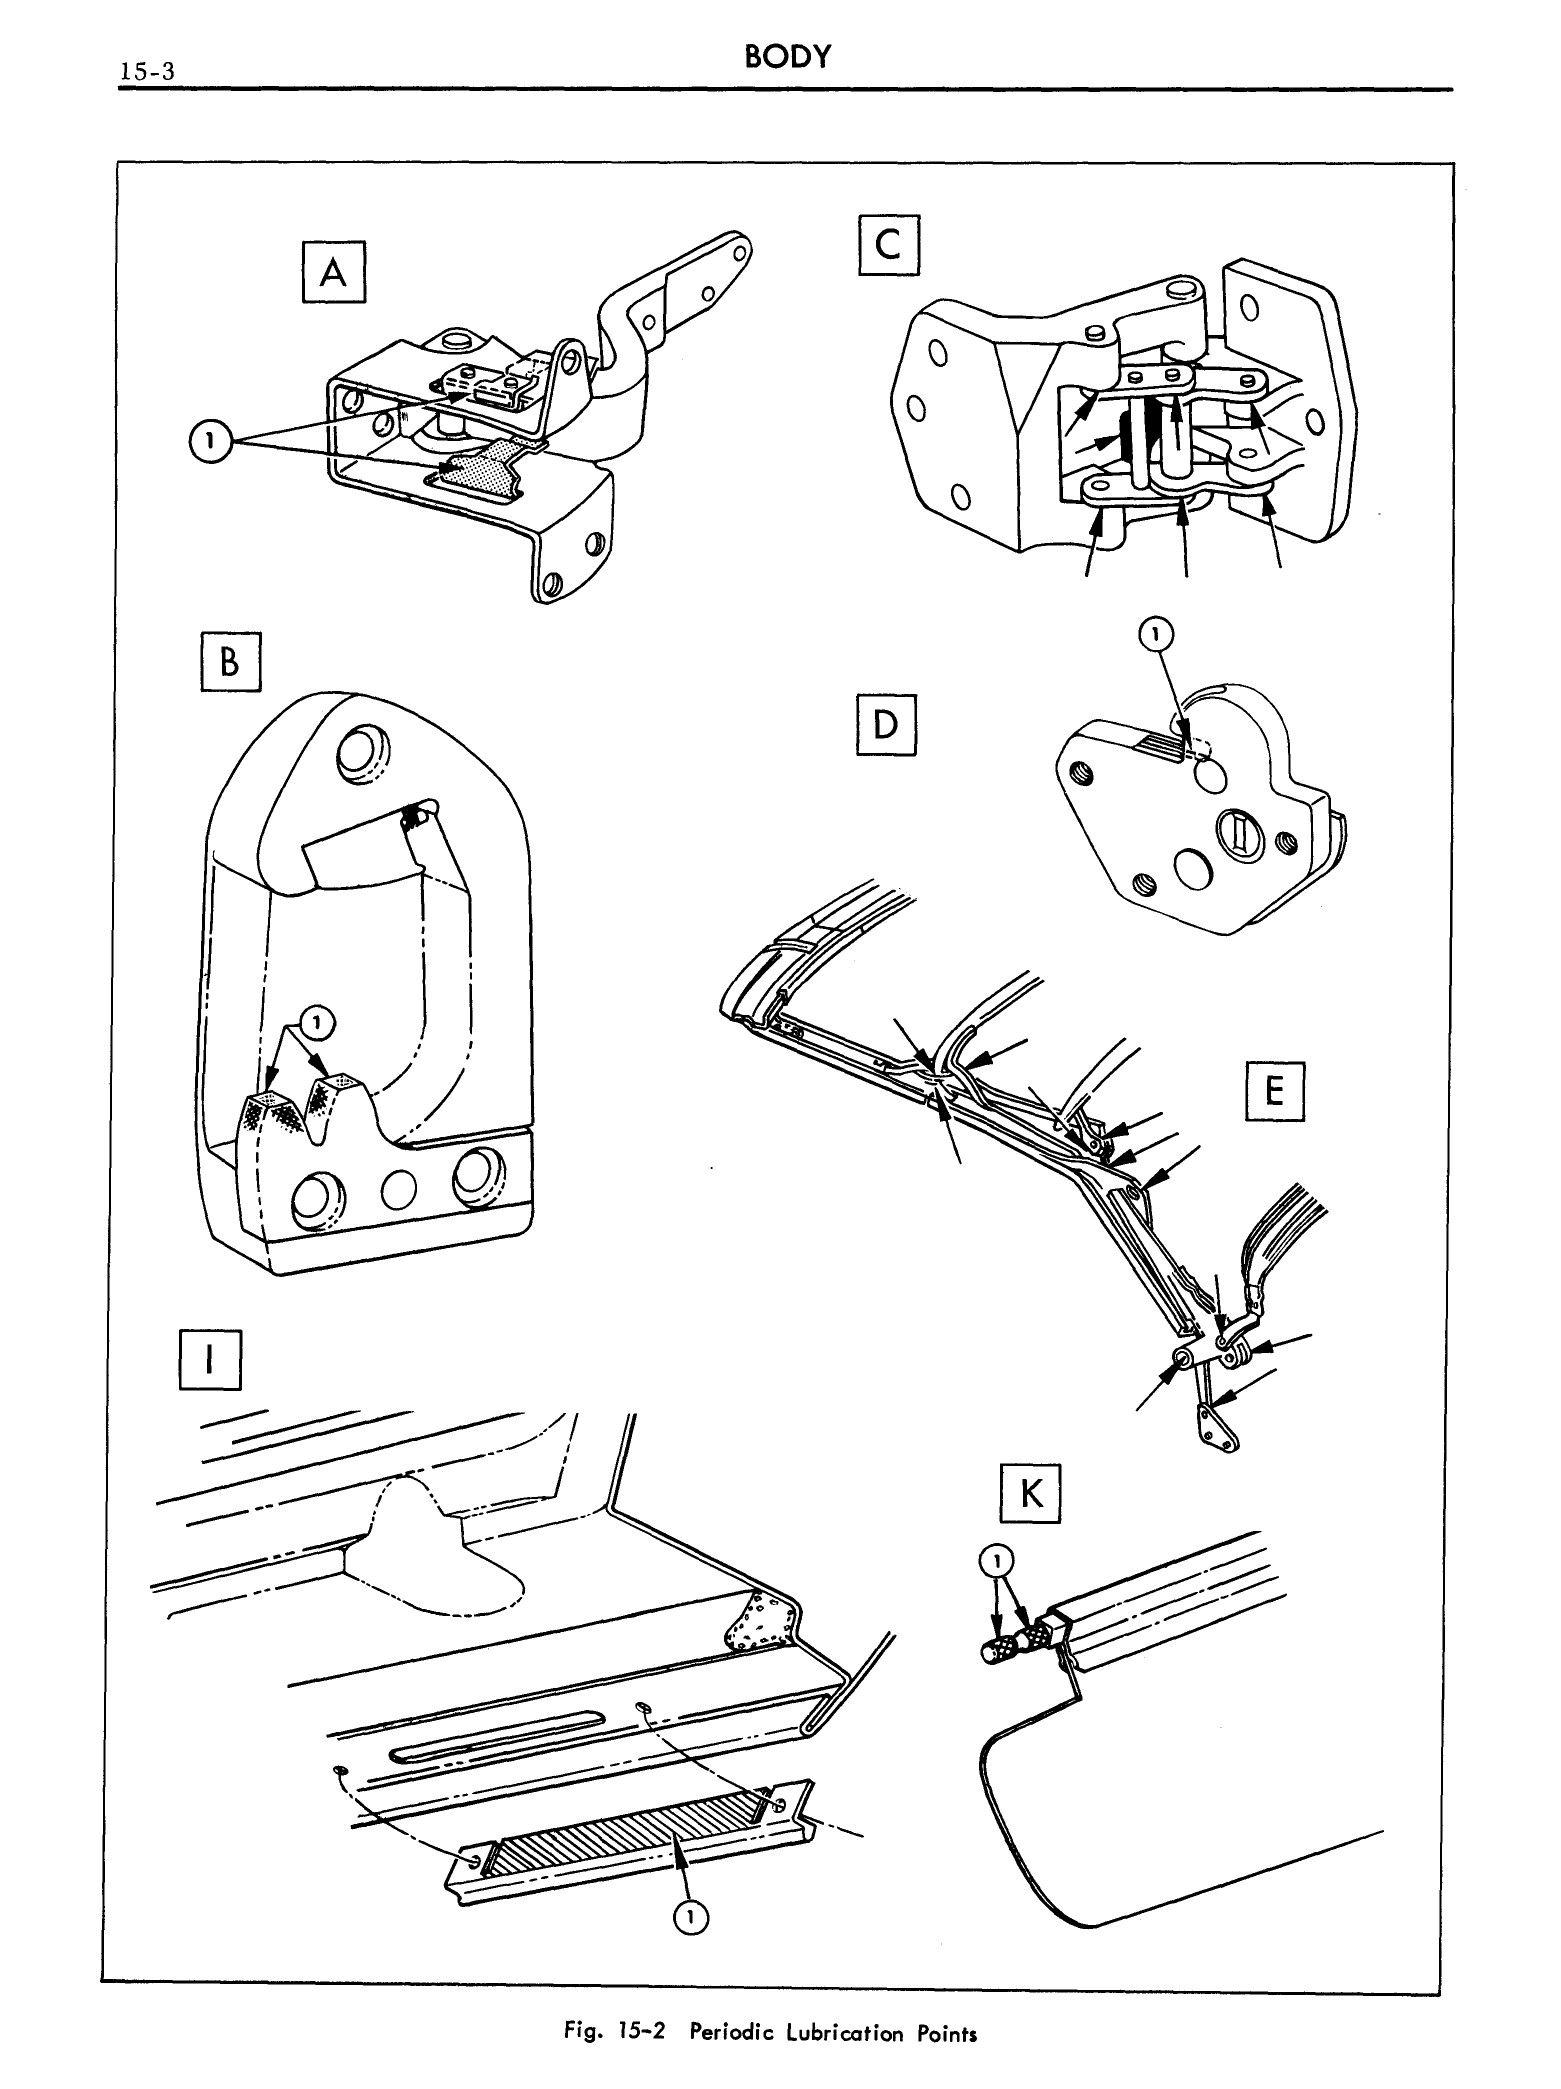 1959 Cadillac Shop Manual- Body Page 3 of 99